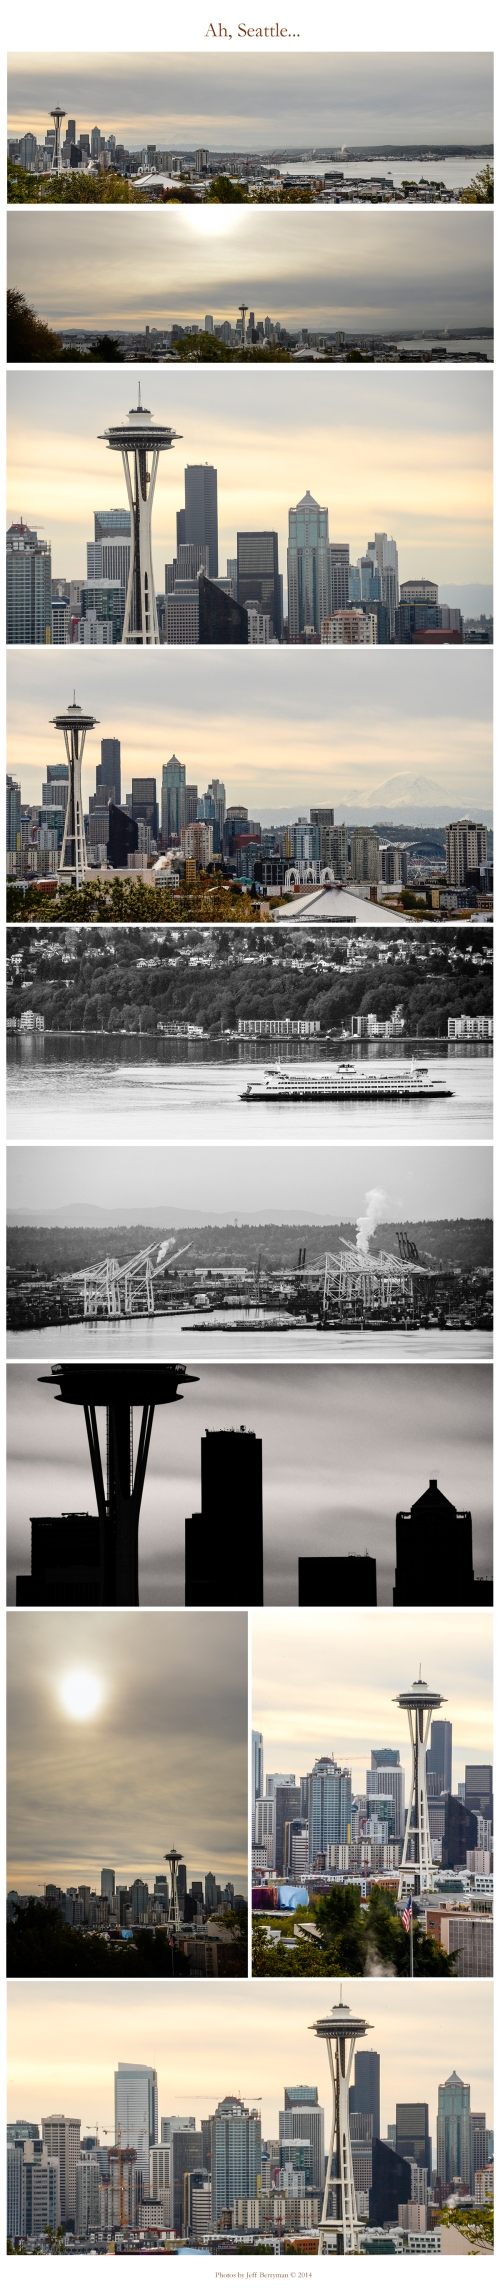 Seattle Skyline Collage